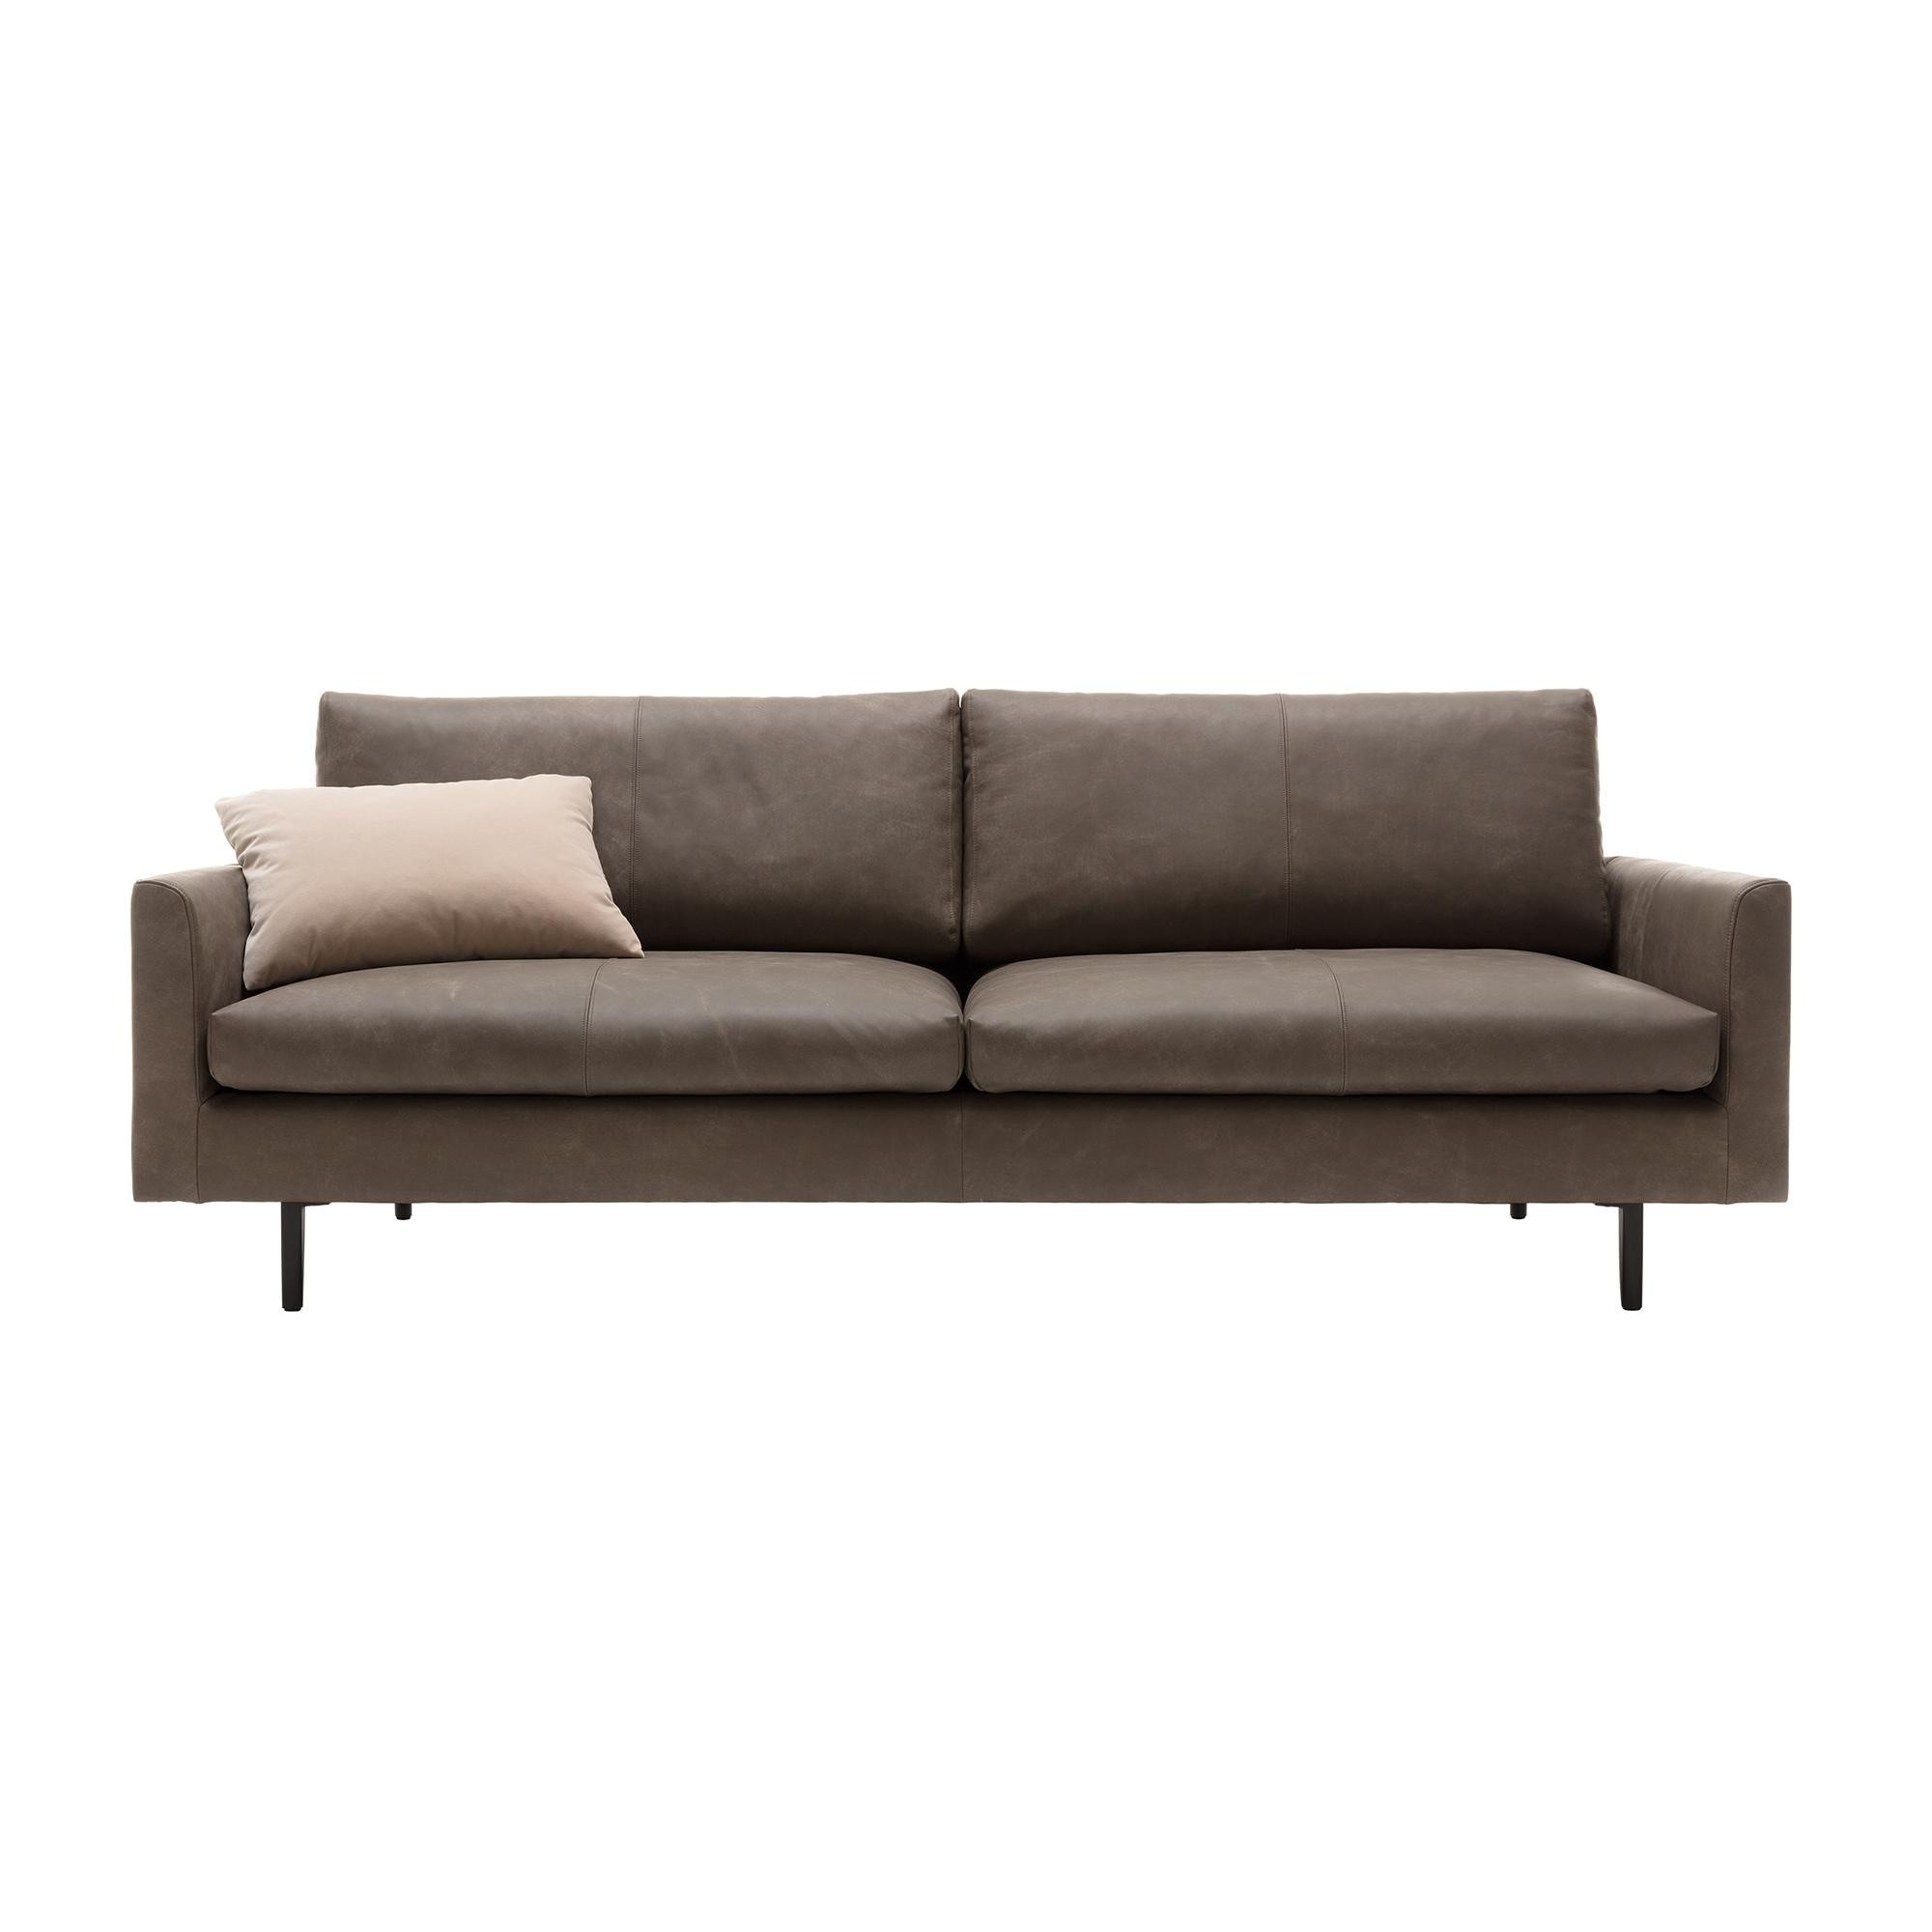 Freistil Rolf Benz Freistil 134 2 Seater Sofa Ambientedirect